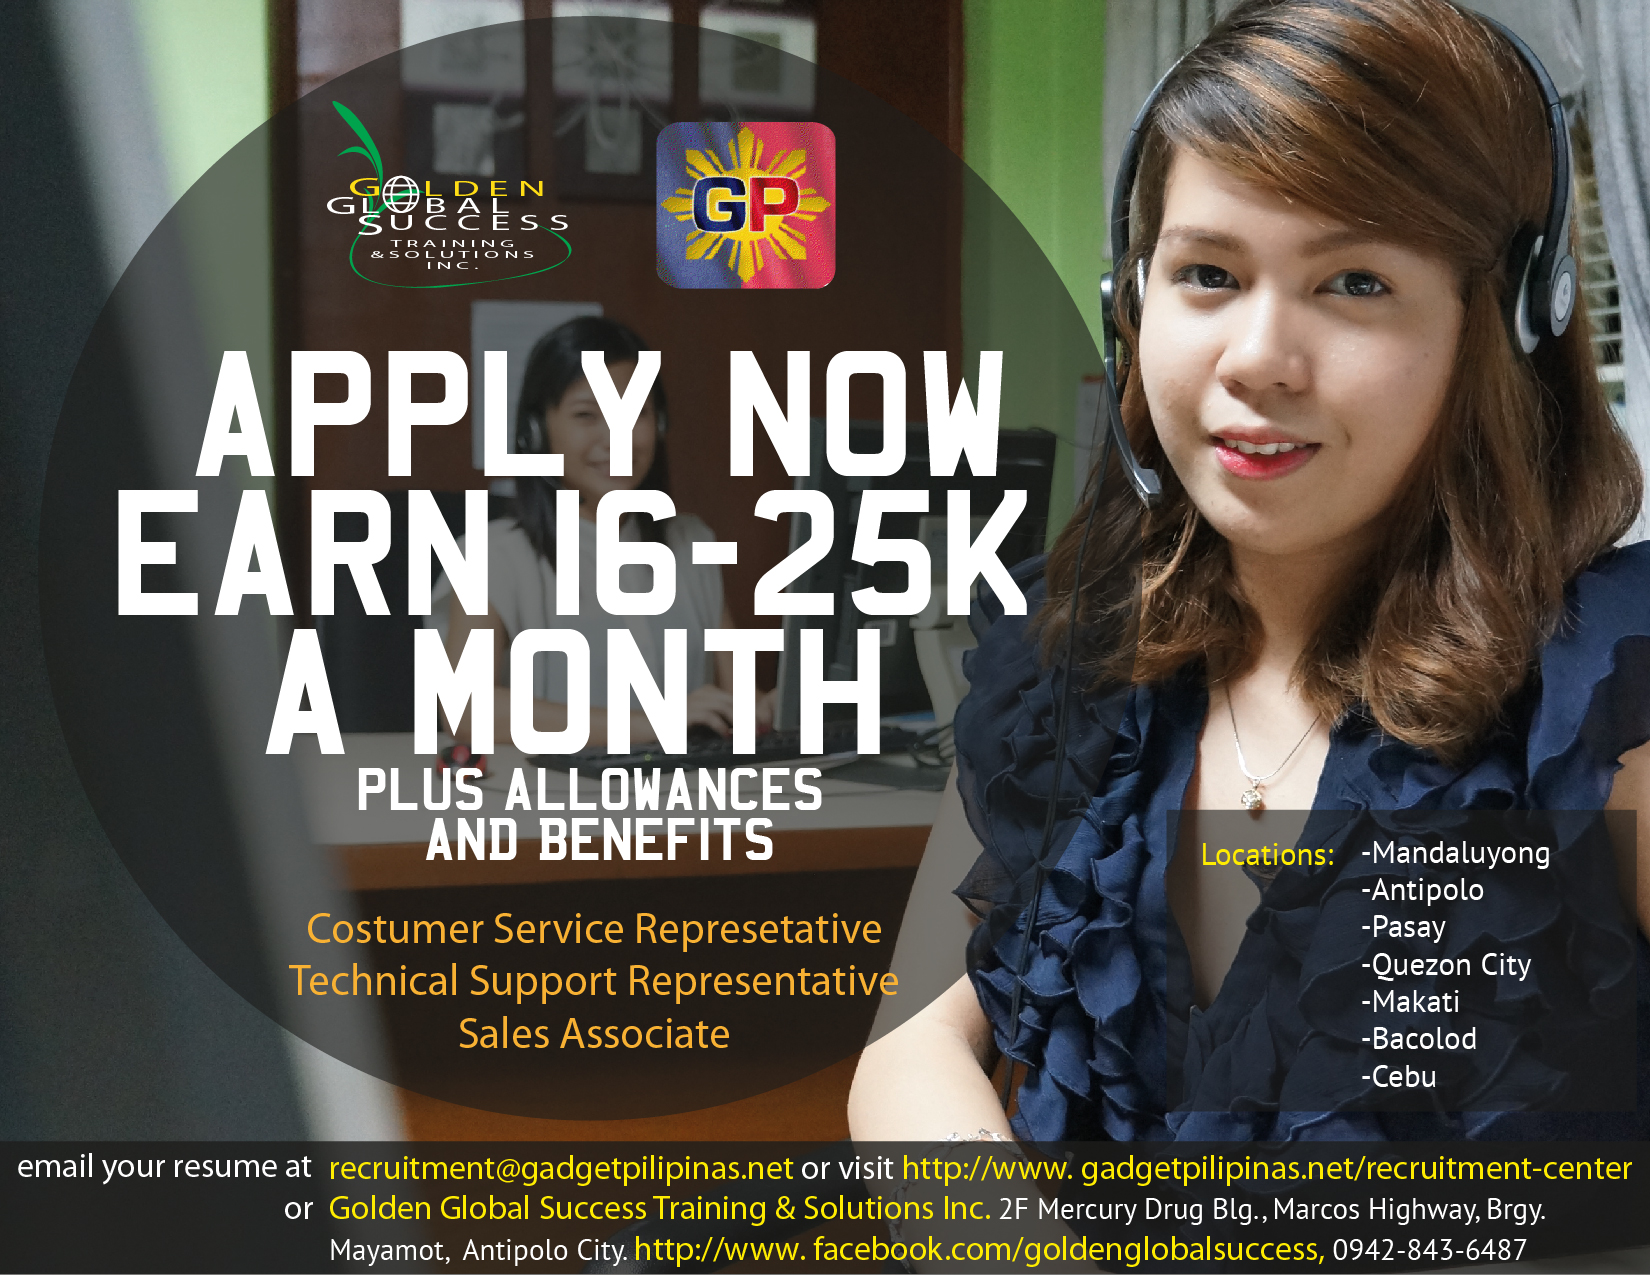 Gadget Pilipinas Recruitment, Recruitment, Call Center Training, Call Center, BPO, Contact Center, Business Process Outsourcing, Day Shift, Graveyard Shift, Back Office, Customer Service Representative, CSR, Sales Representative, Sales Support, Technical Support Representative, TSR, Technical Support, Tech Support, Data Processing, Data Encoding, Back Office Support, Non-Voice, Non Voice, Customer Service, Jobs, Pioneer Account, US Account, Australian Account, UK Account